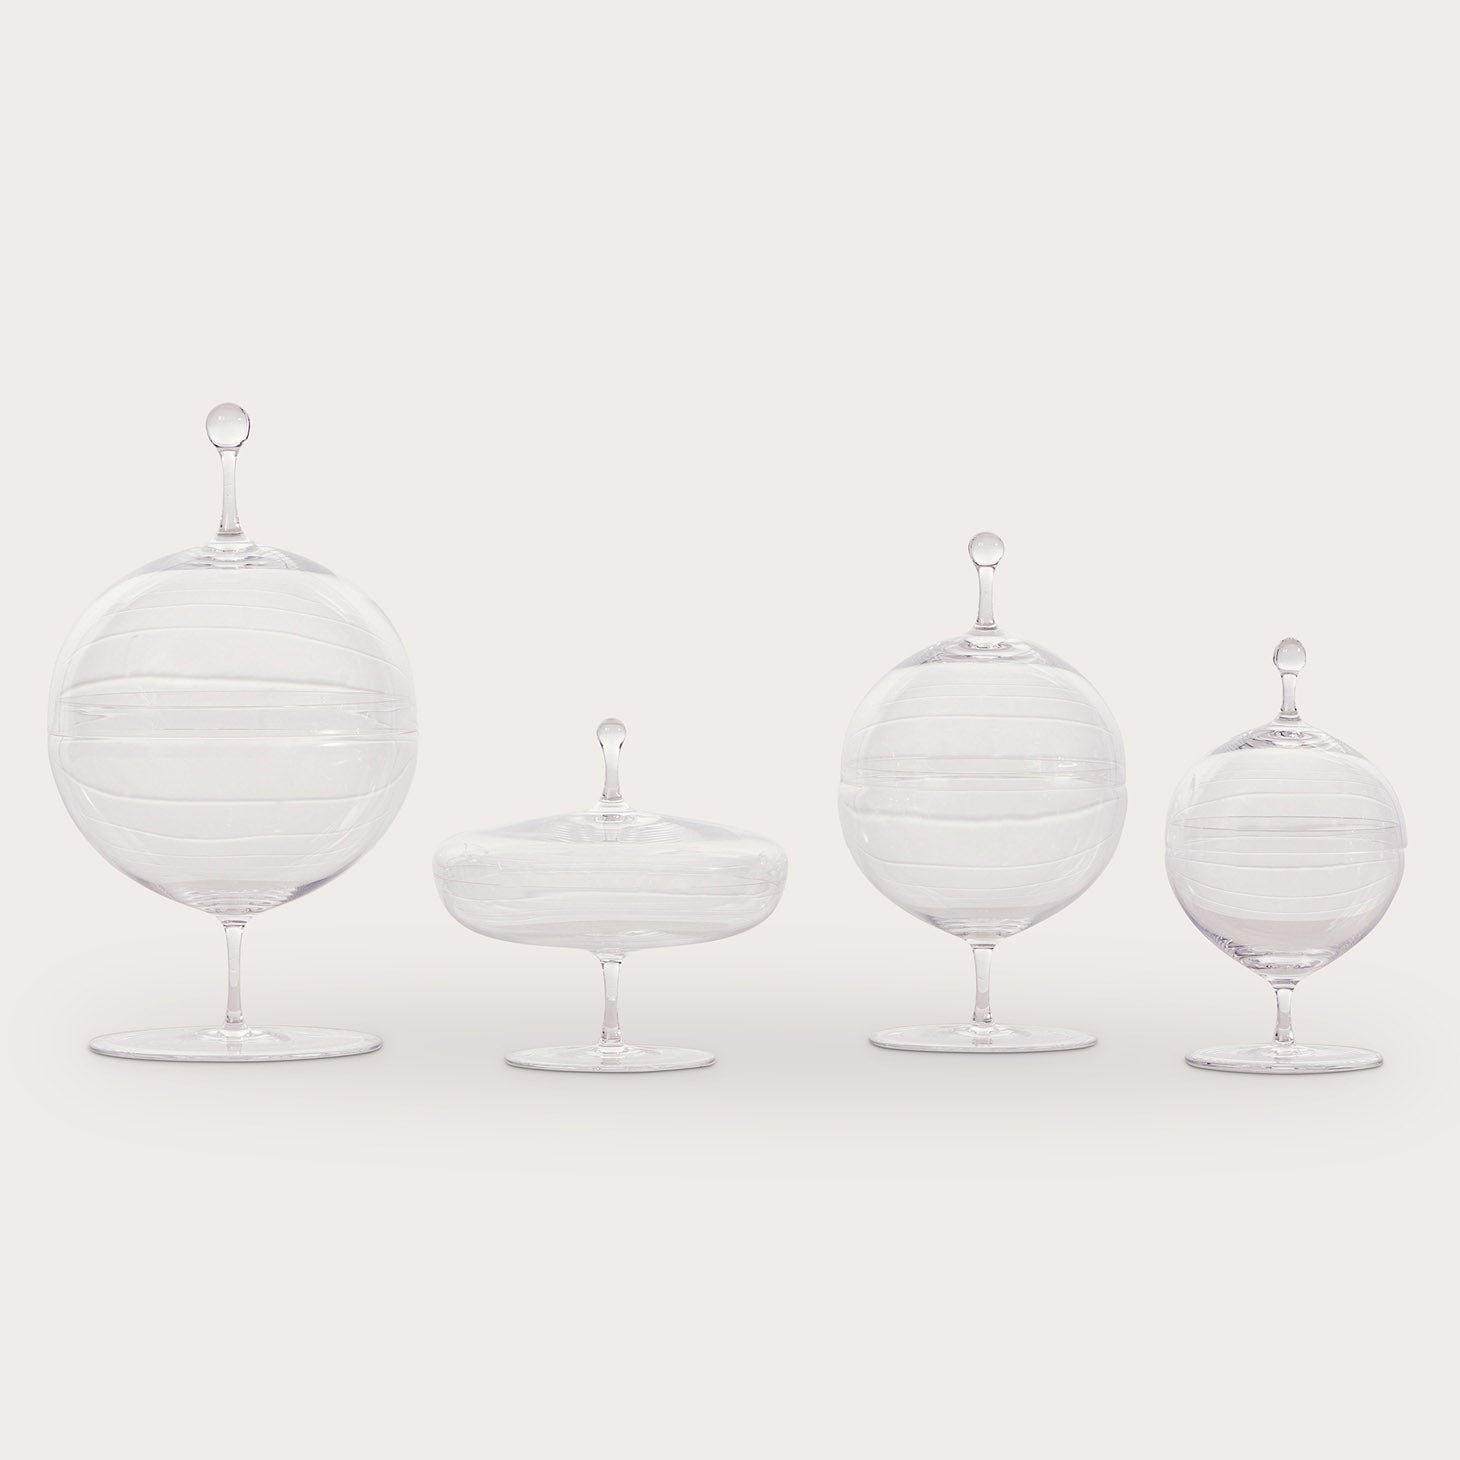 Candy Dishes Accessories Lobmeyr Designer Furniture Sku: 220-100-10041